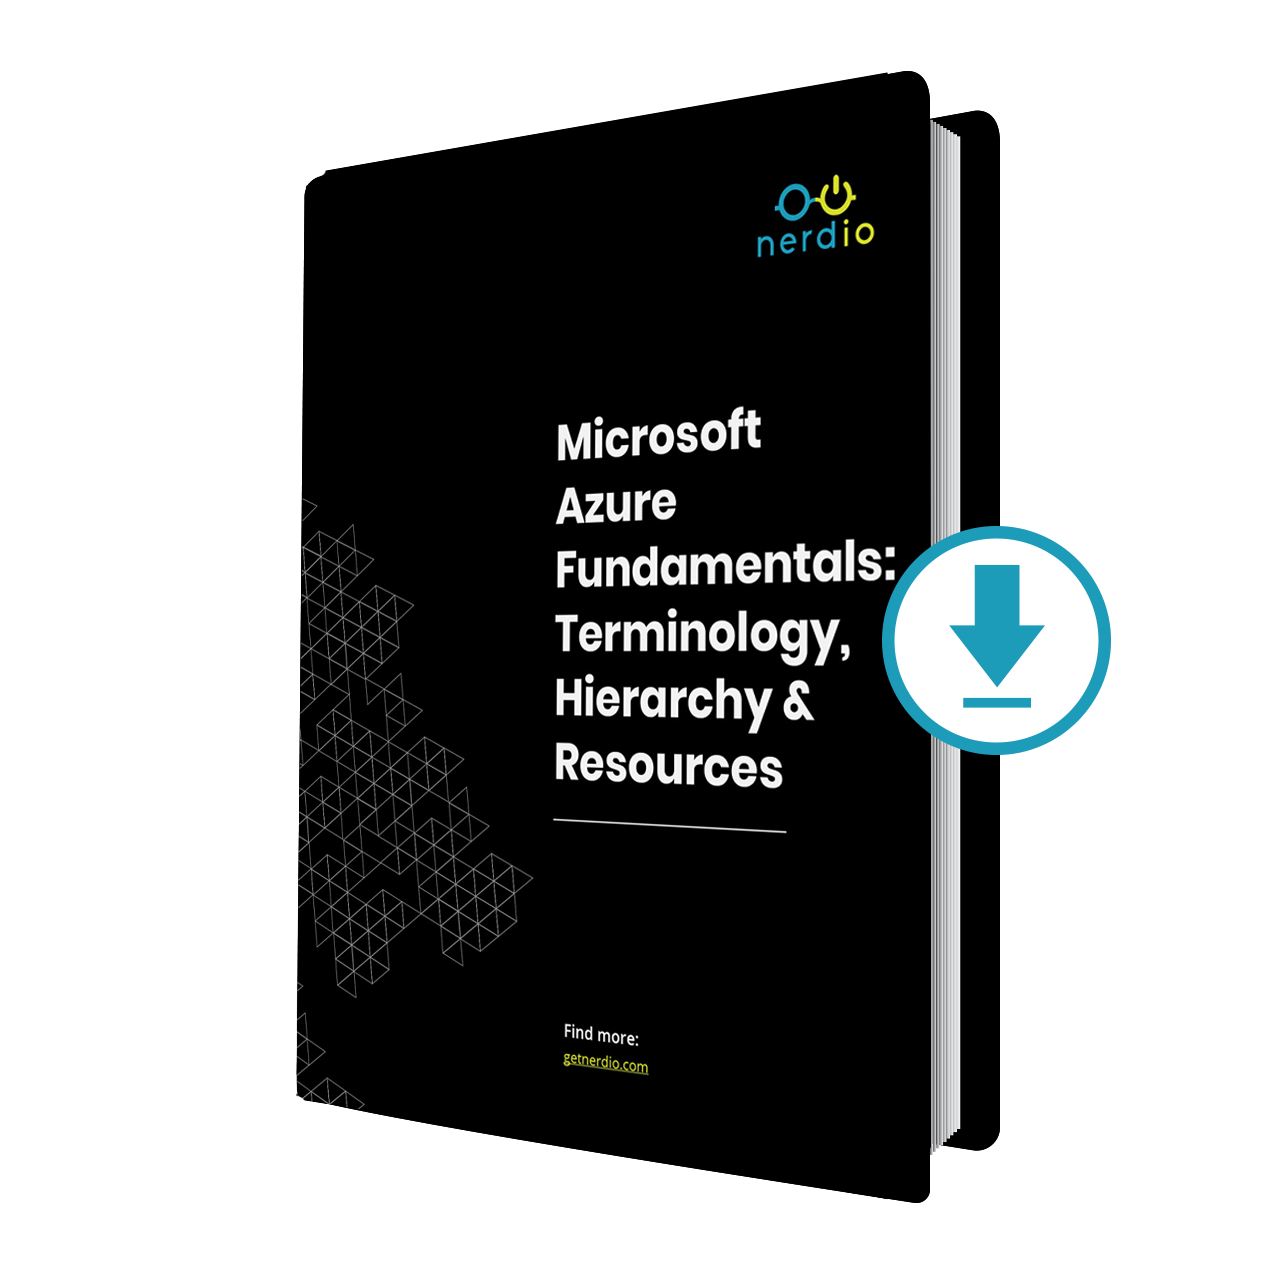 Nerdio_White-Paper_Download-Btn_Azure-Fundamentals_v1